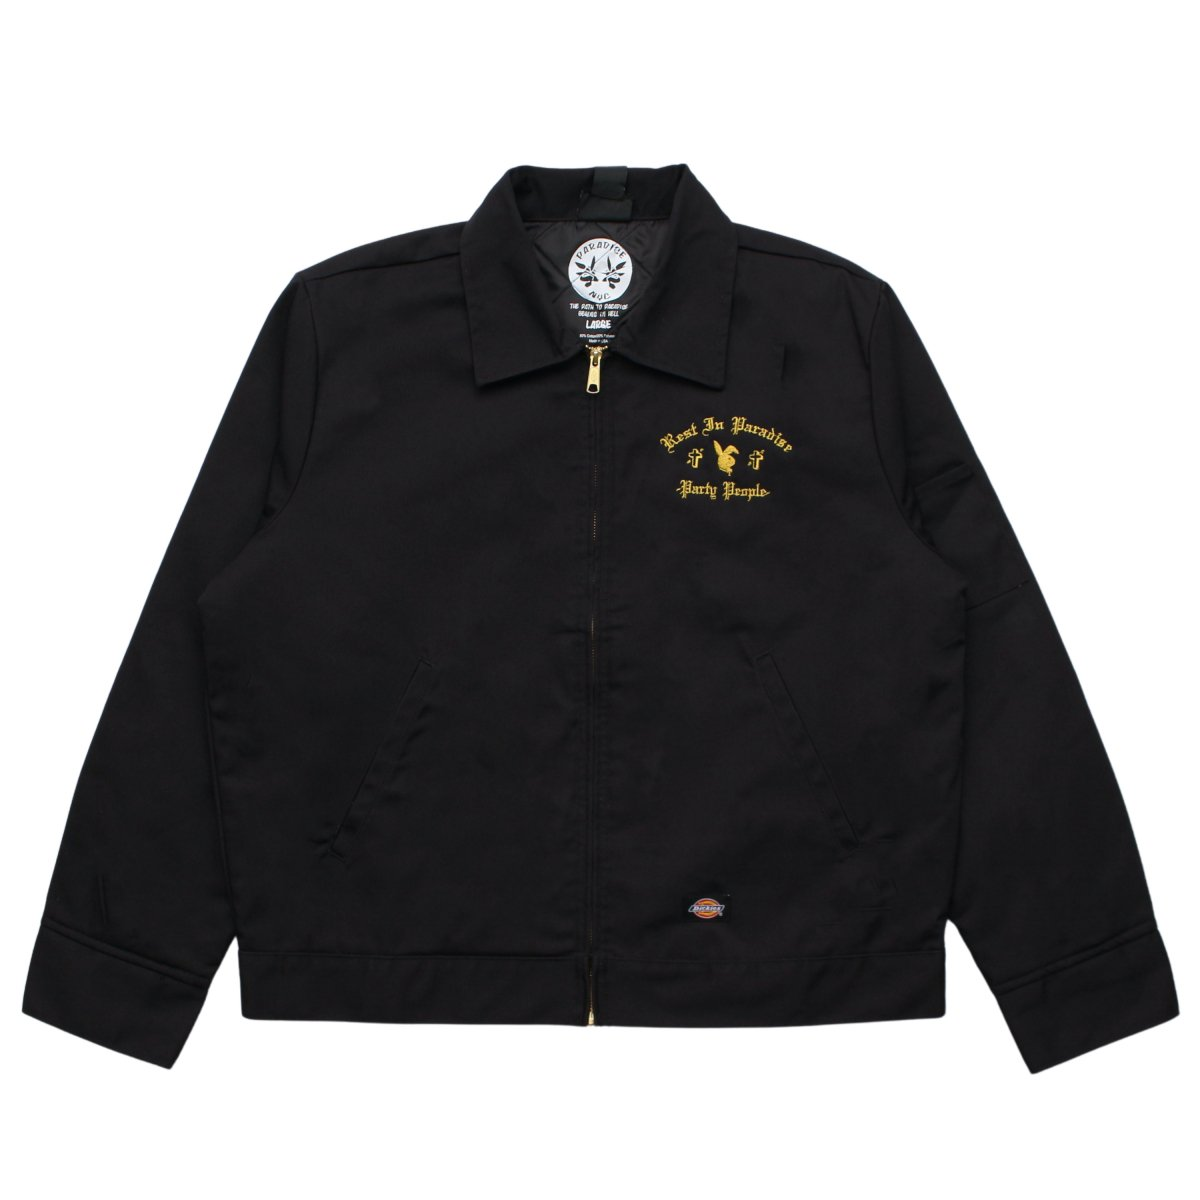 PARTY PEOPLE DICKIES (GOLD EMBROIDERY) 【BLACK】